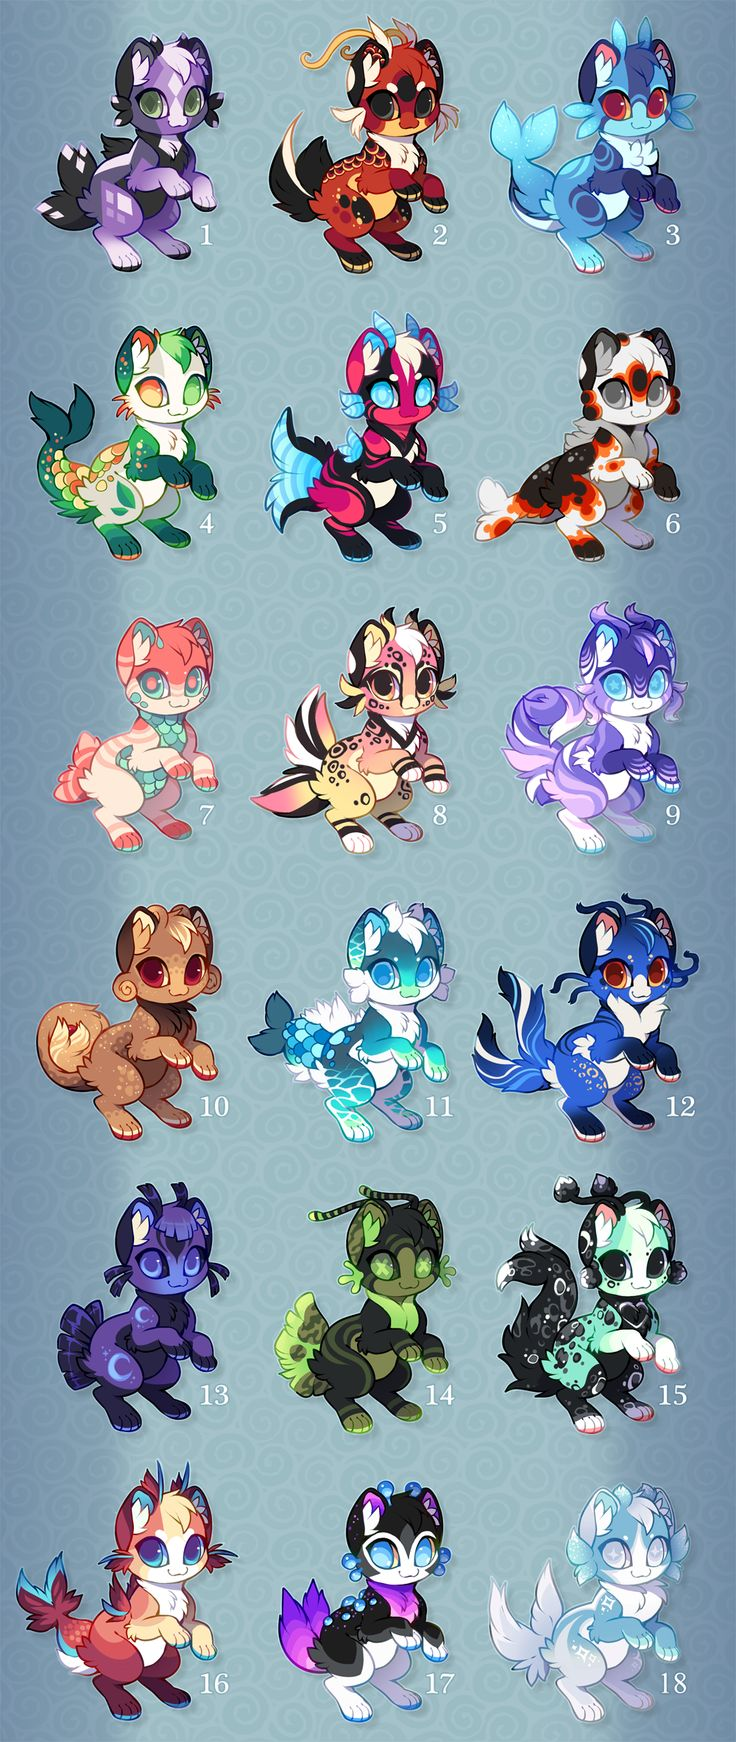 Nekoi Mega Batch (closed) by Kawiku on DeviantArt